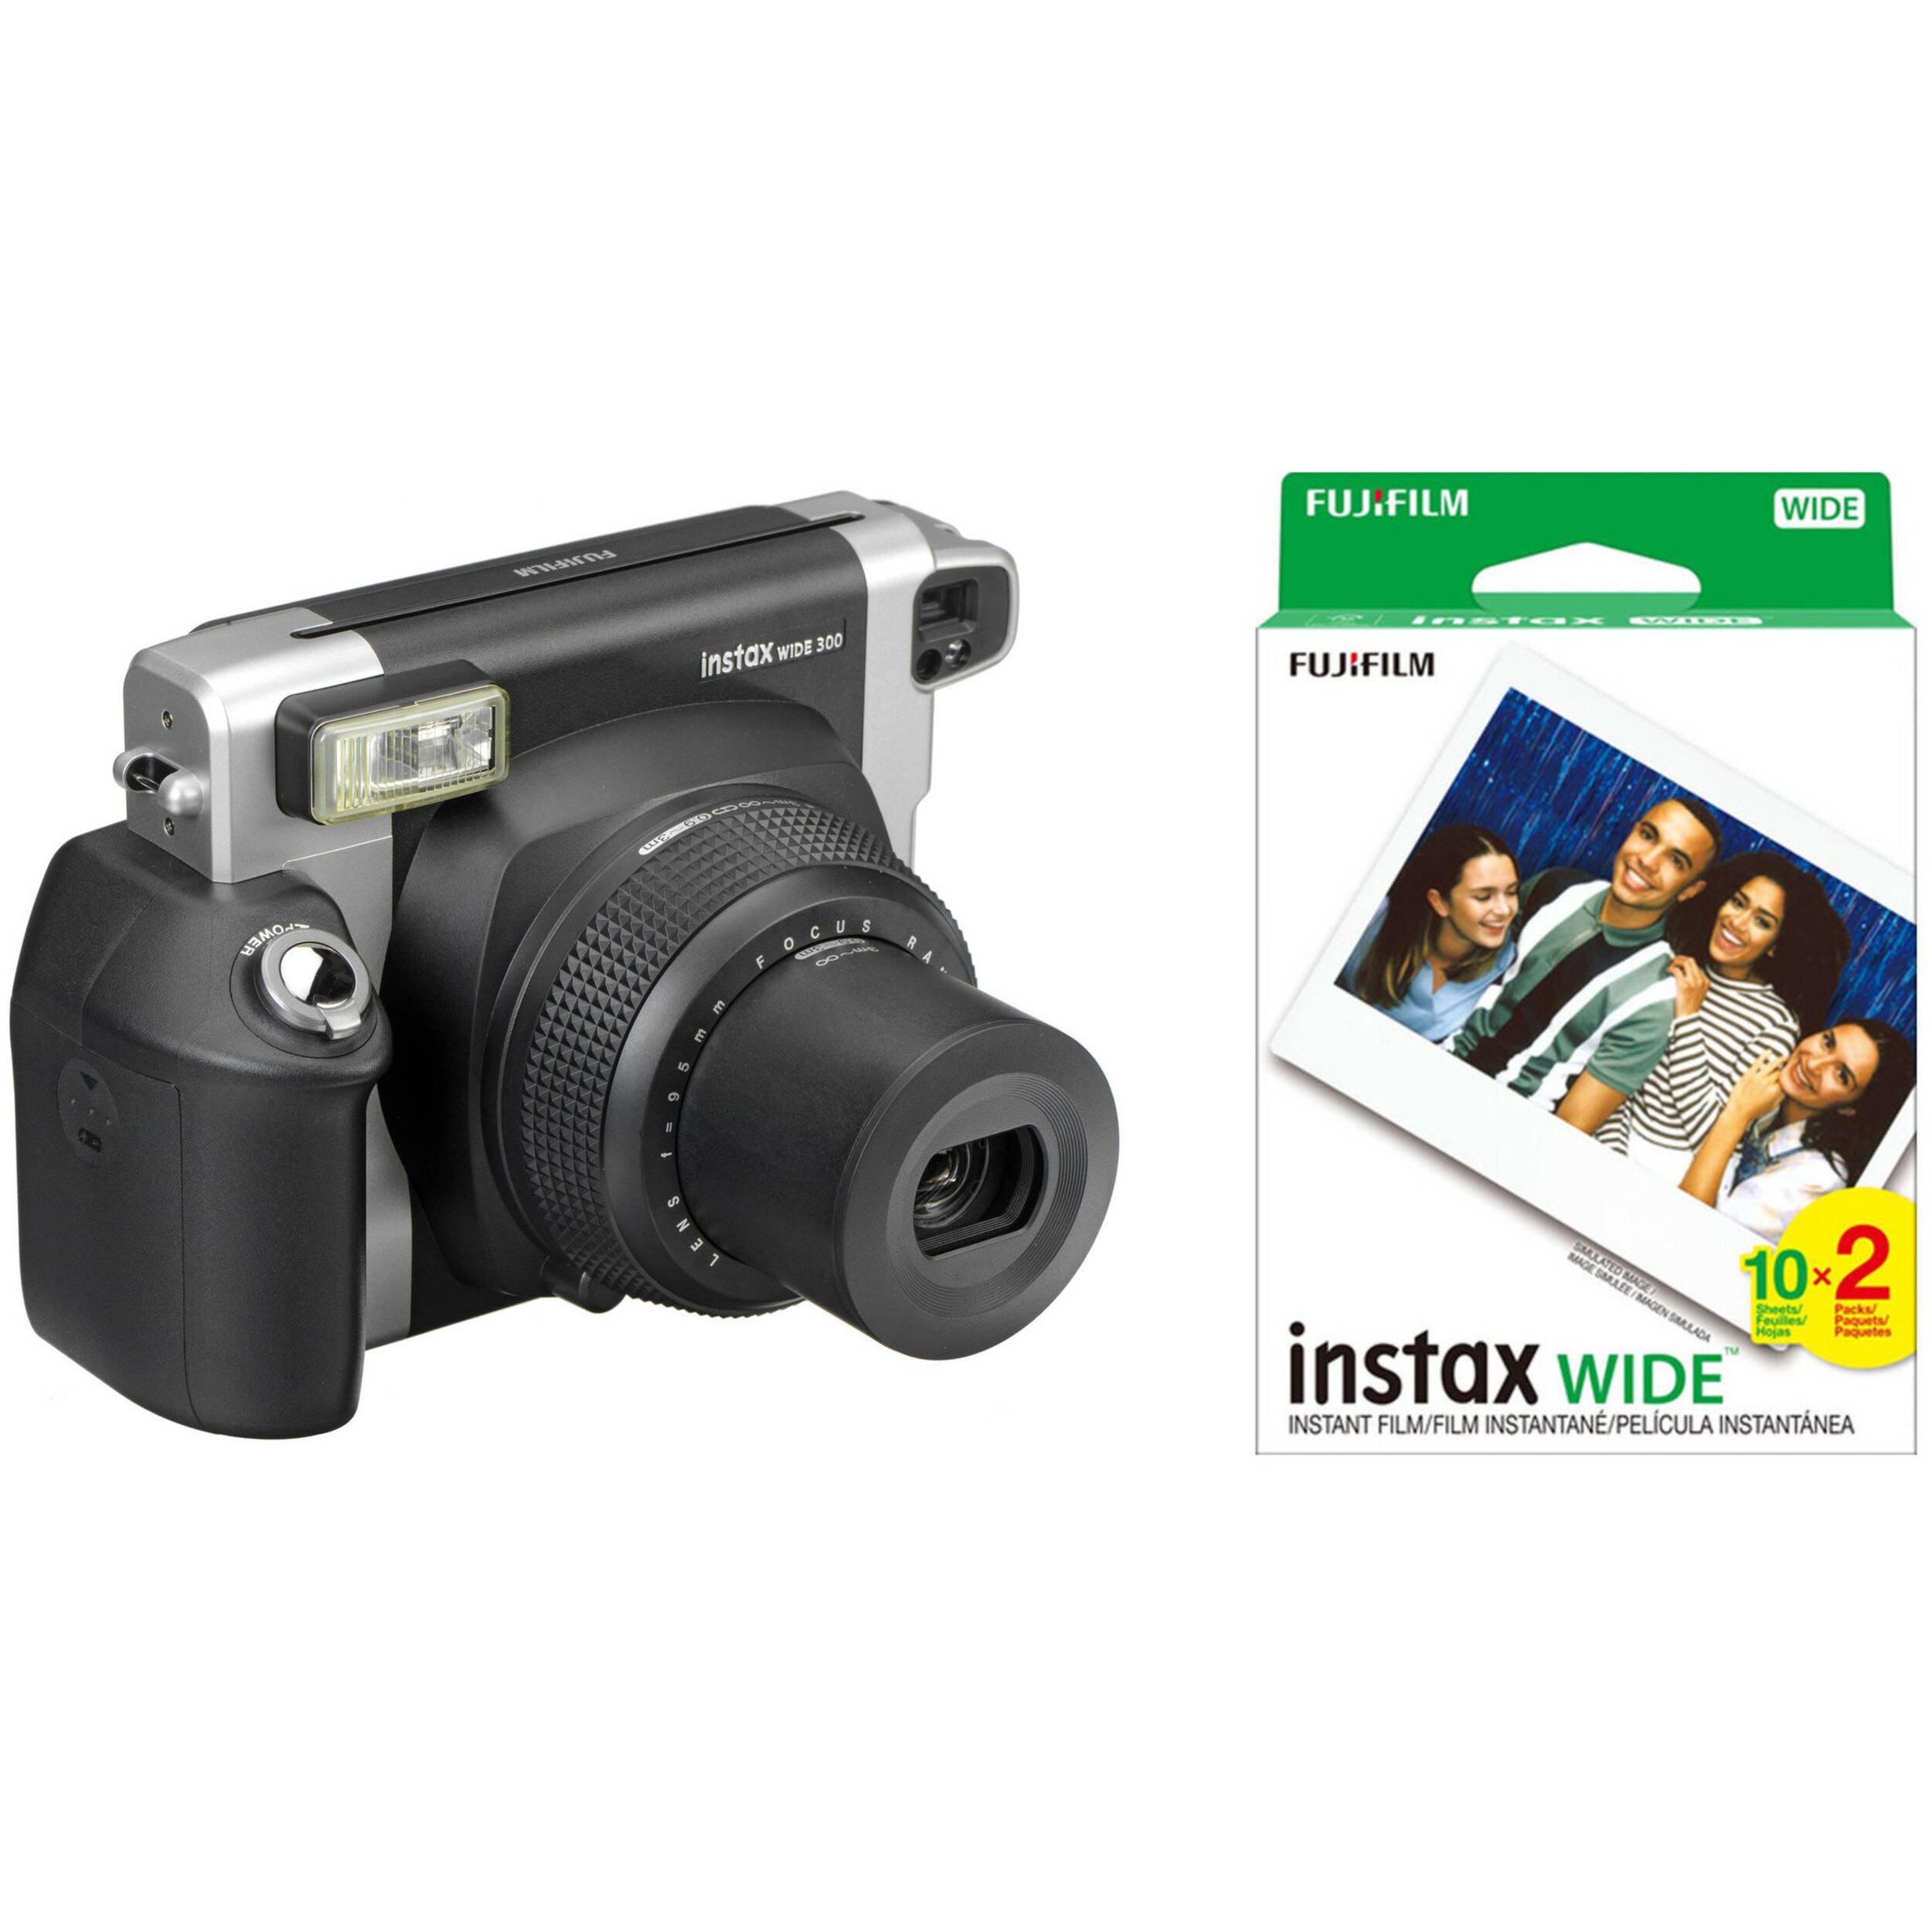 fujifilm instax wide 300 instant film camera with twin pack of. Black Bedroom Furniture Sets. Home Design Ideas